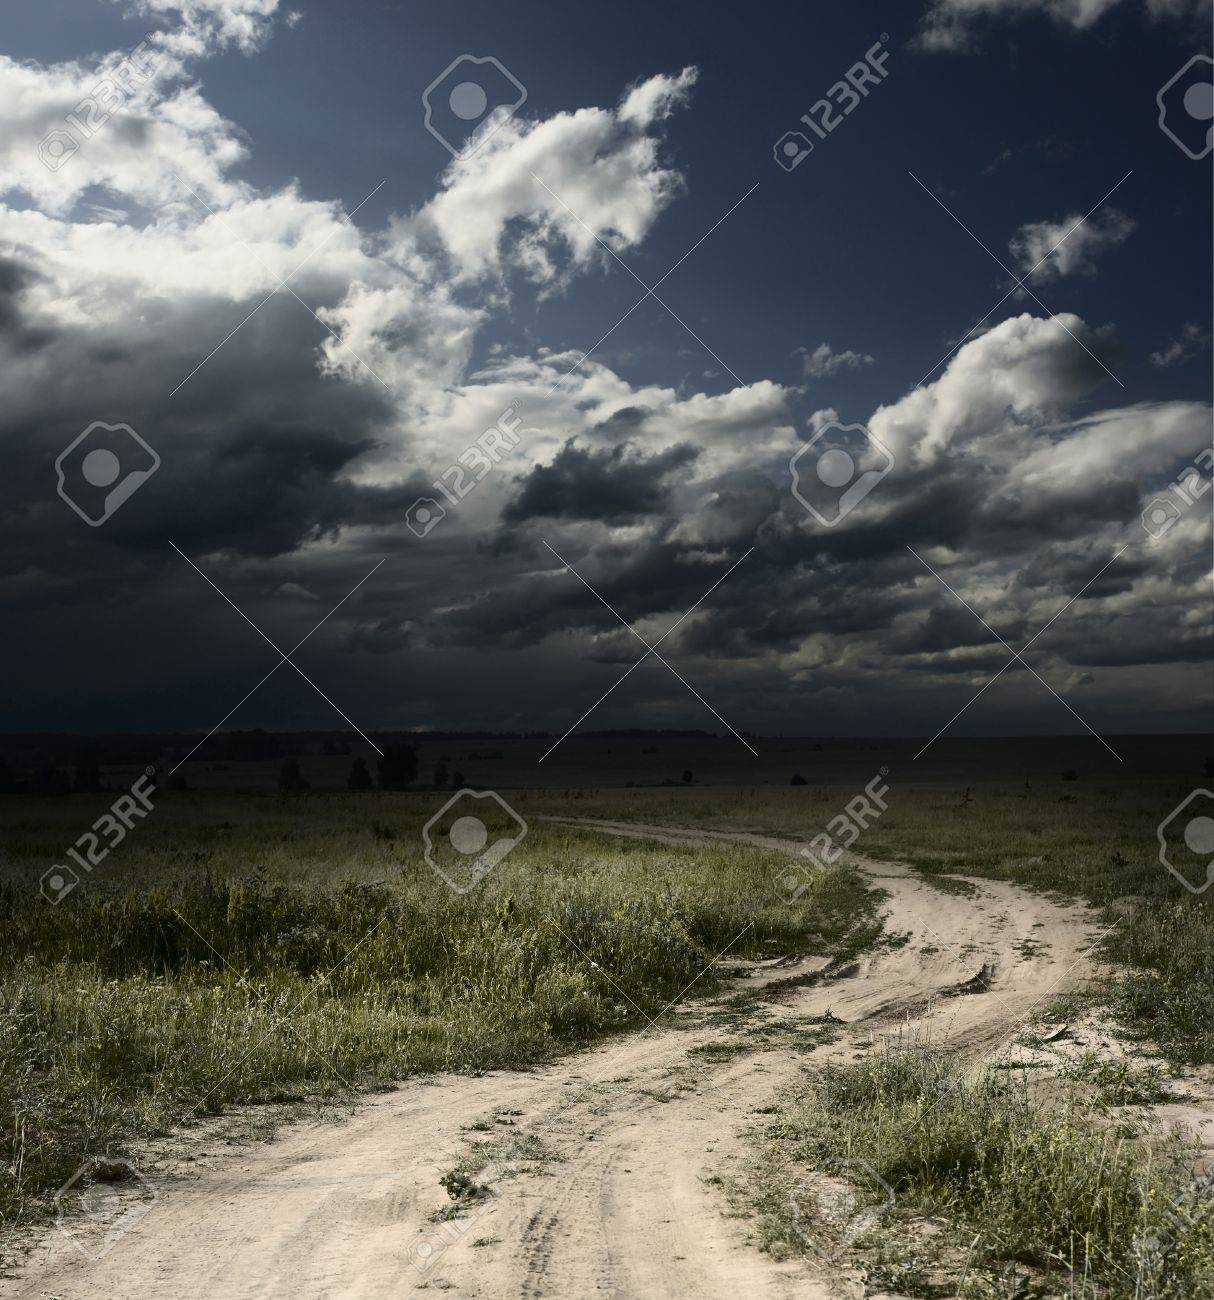 Rural road in field with wild herbs and dark storm clouds Stock Photo - 8323241